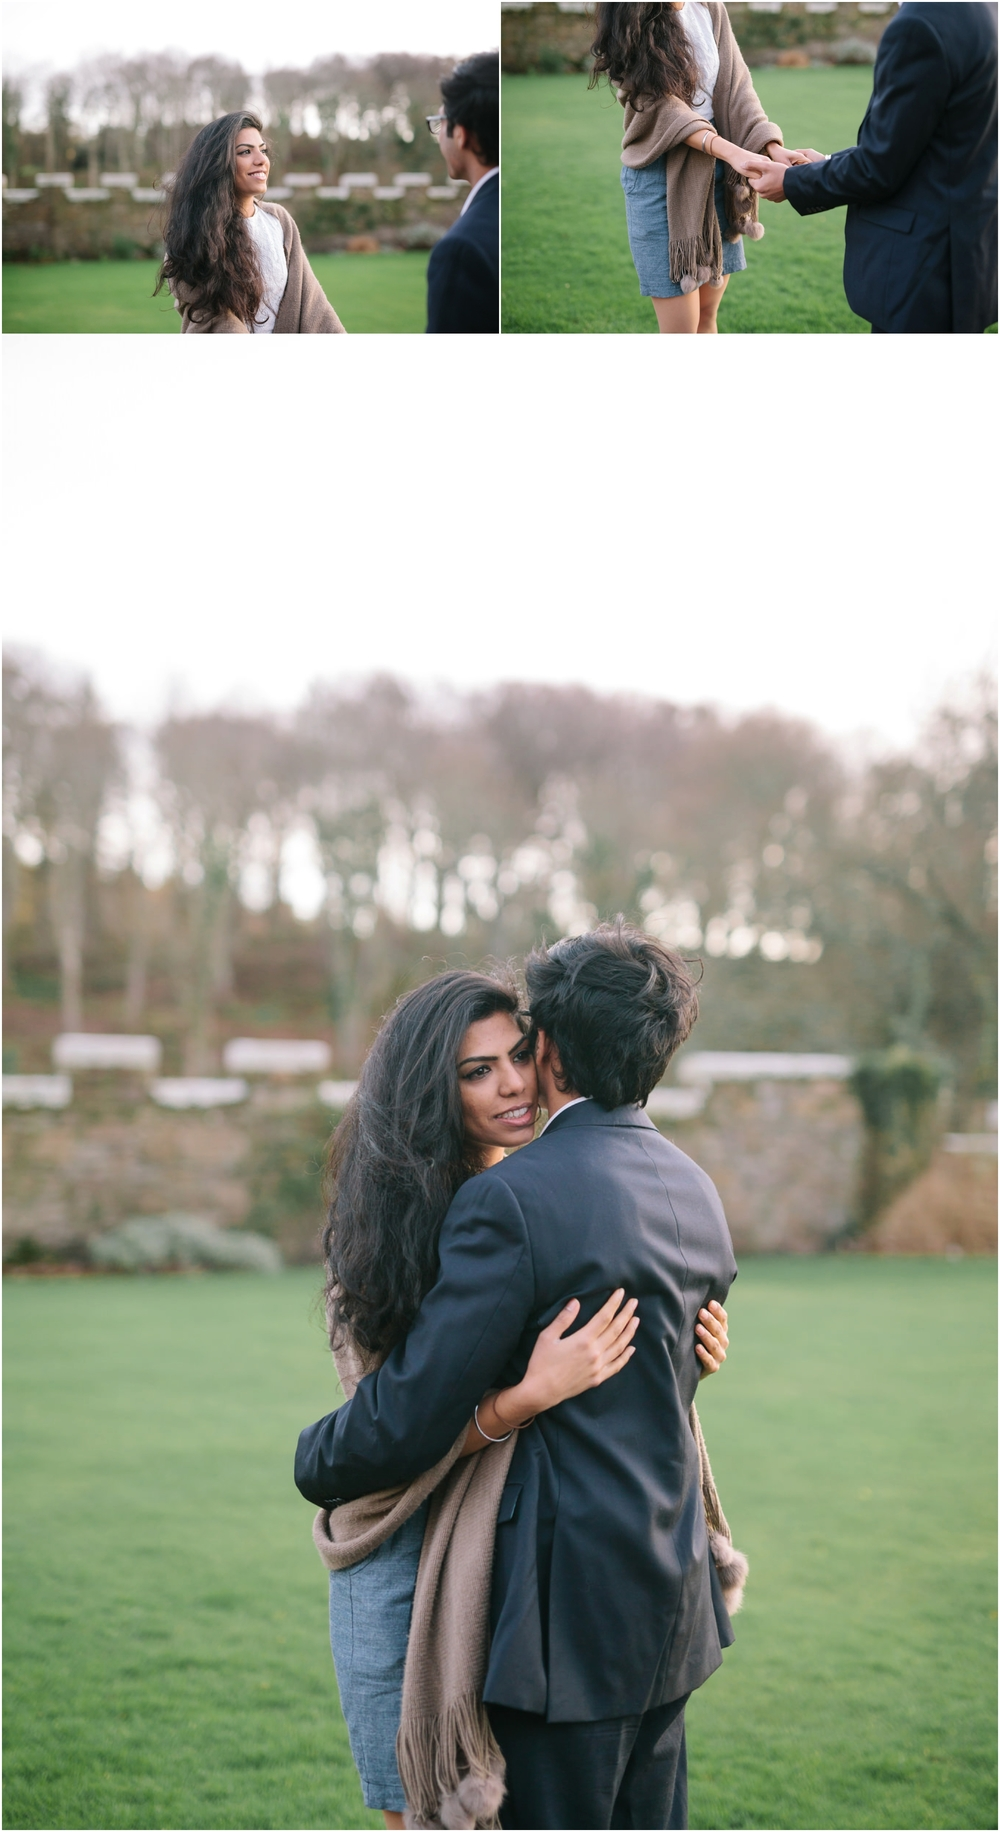 suzanne_li_photography_culzean_castle_wedding_proposals_0048.jpg